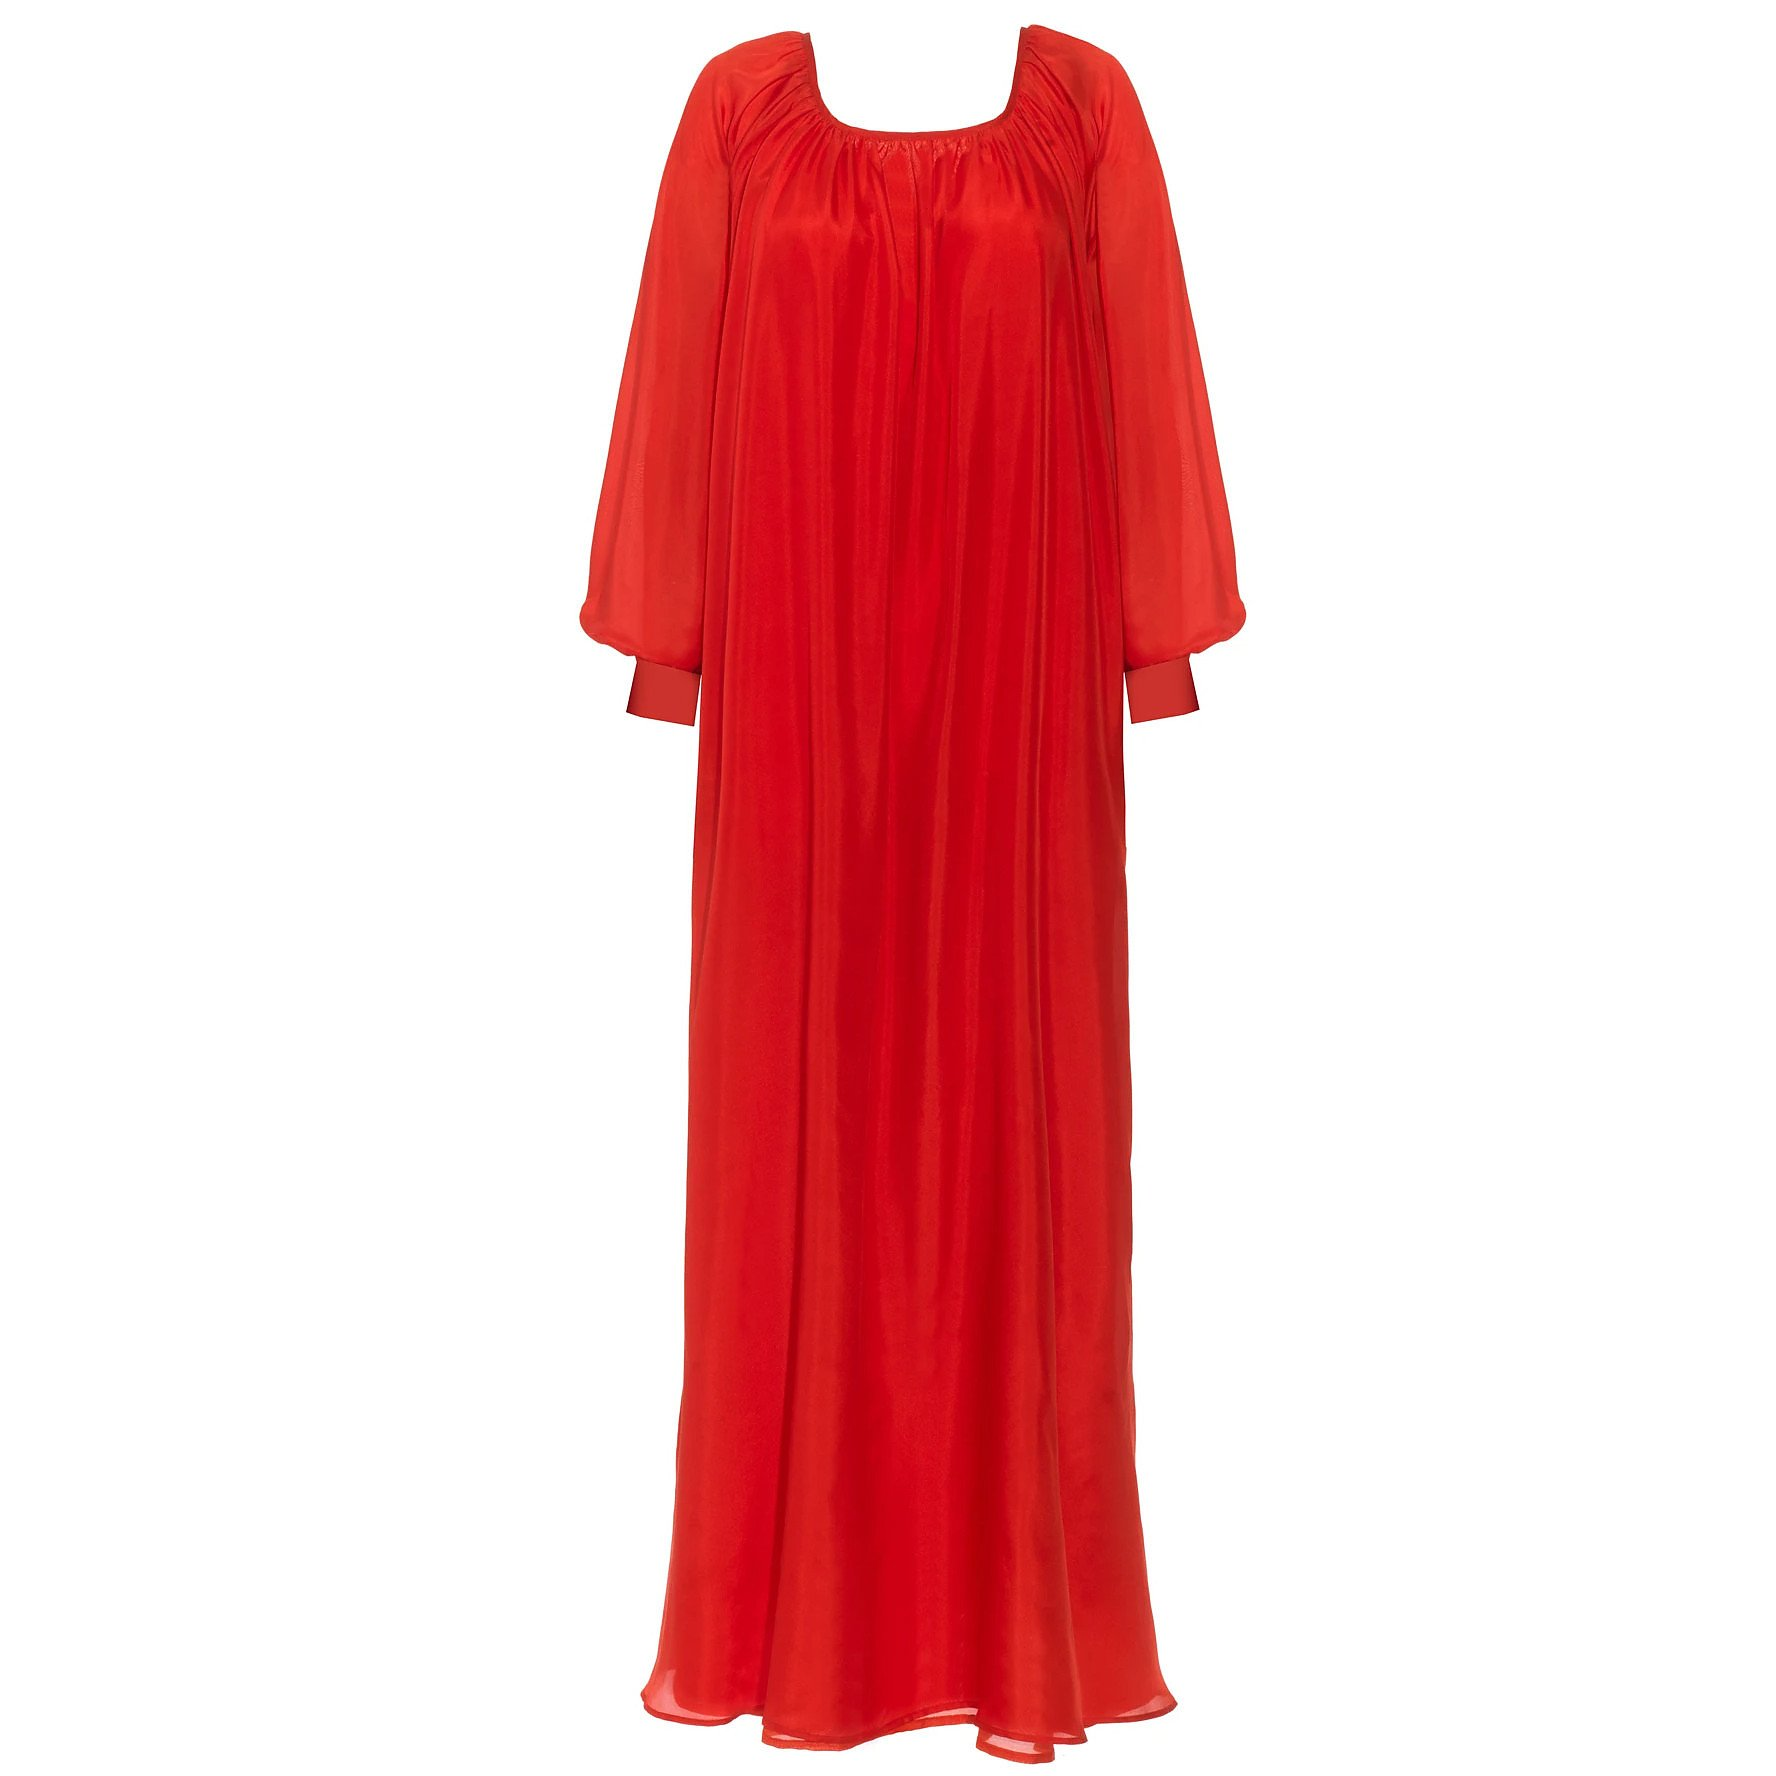 Lisou Red Long Sleeve Maxi Dress with Tie Cuffs